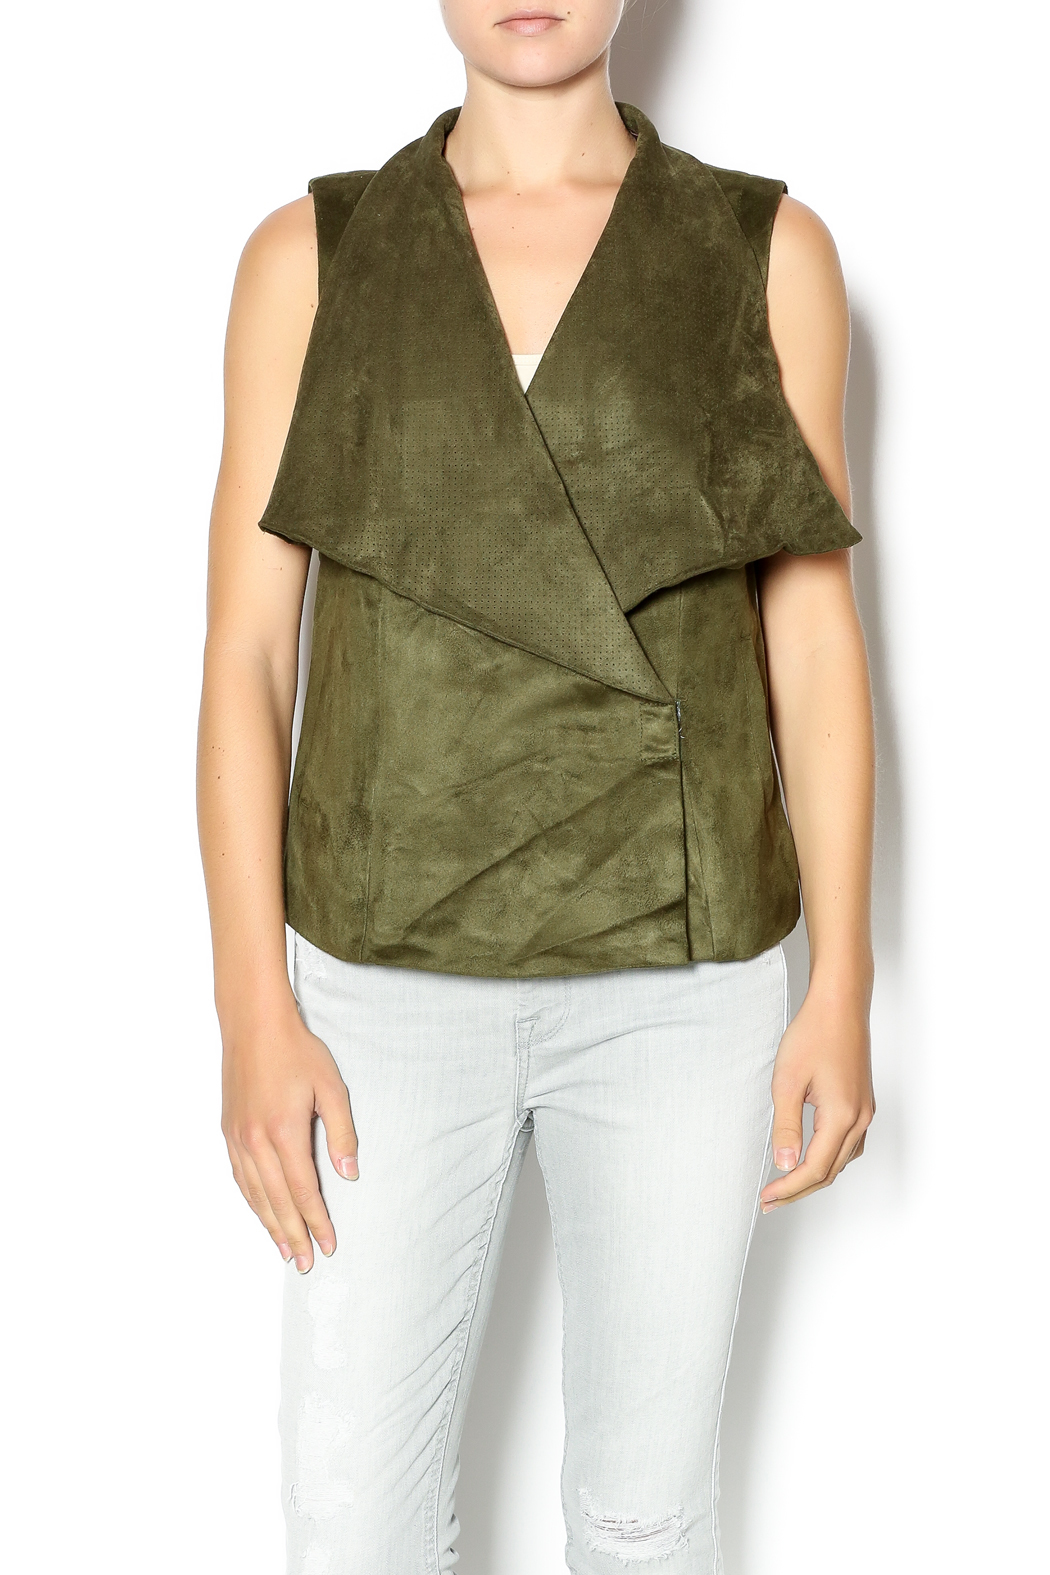 4f8855cc0ee37f Kut from the Kloth Perforated Drape Vest from Arkansas by Harrison s ...